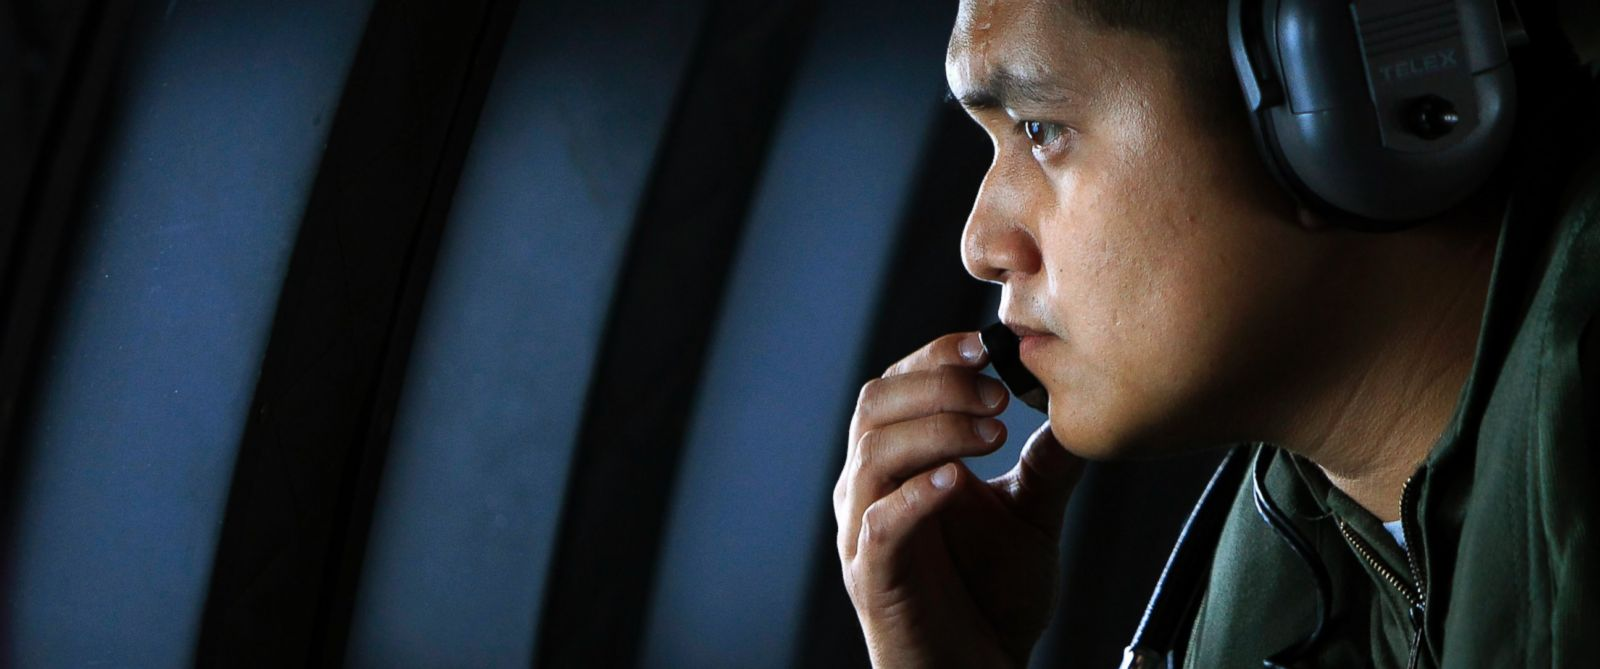 PHOTO: A crew member of a Royal Malaysian Air Force CN-235 aircraft looks out the window during a search and rescue operation for the missing Malaysia Airlines plane over the Straits of Malacca, March 13, 2014.